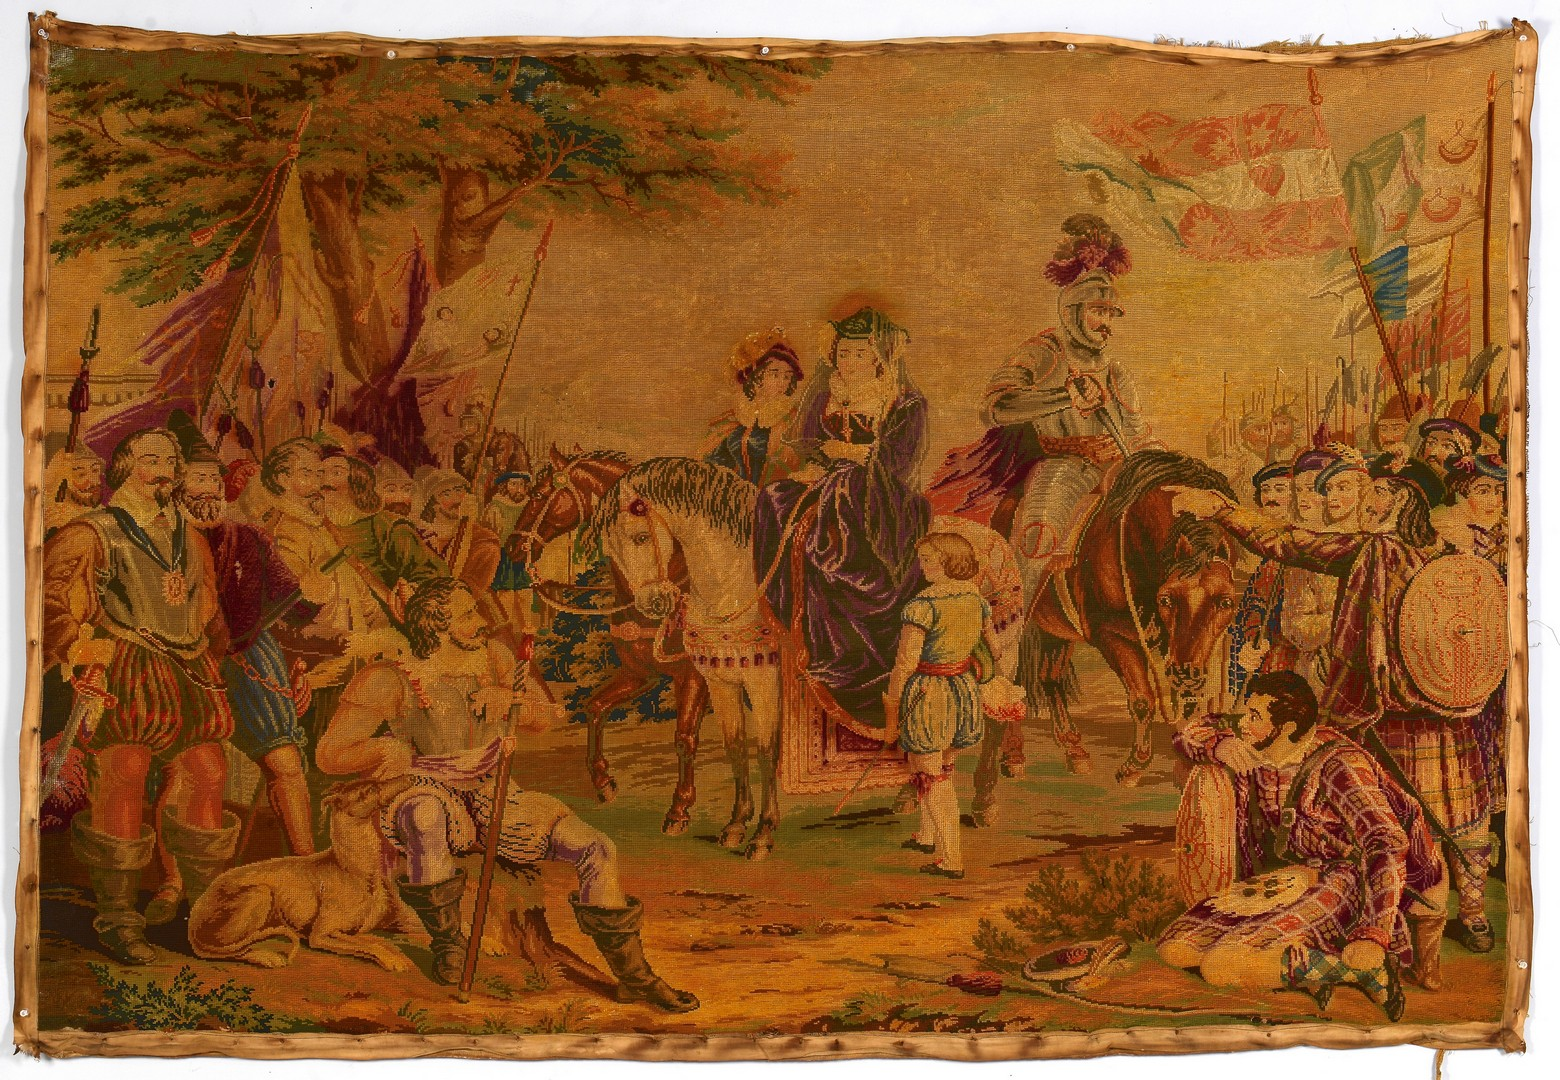 Lot 3832459: 19th c. Embroidered Tapestry, Medieval Scene